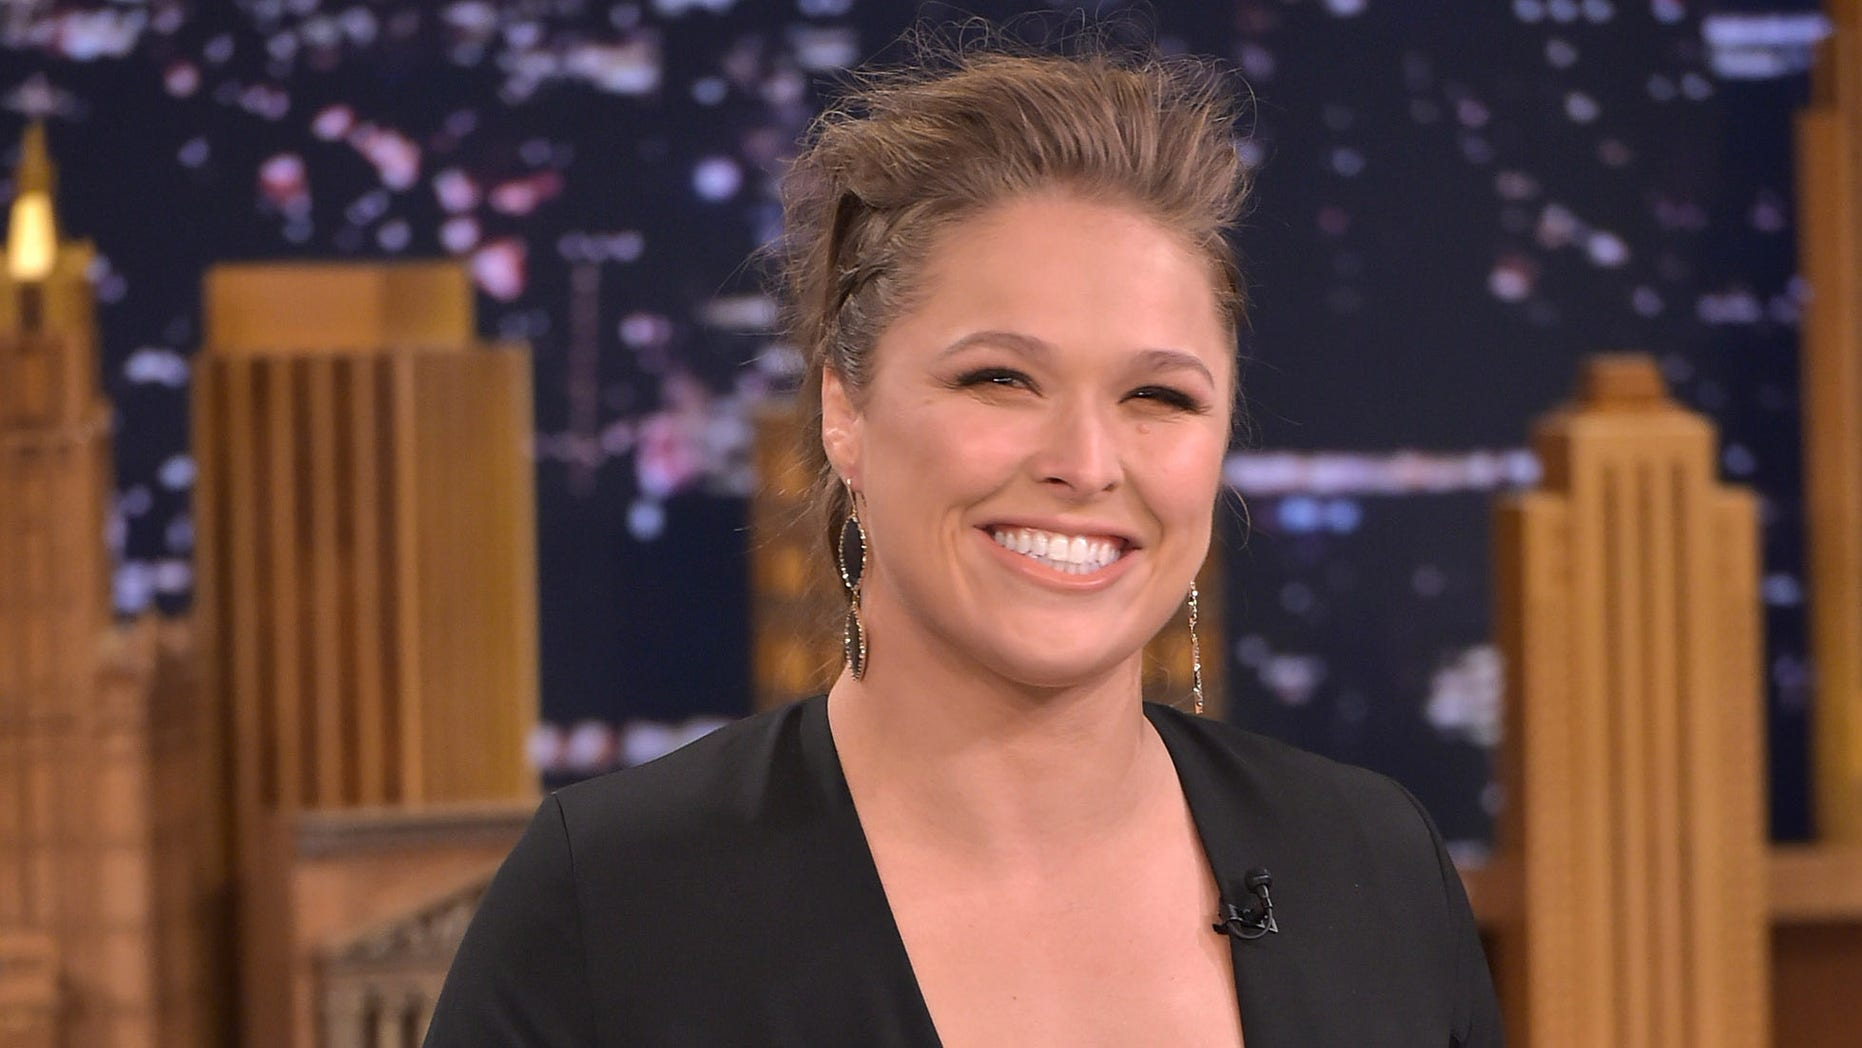 Ronda Rousey visits 'The Tonight Show Starring Jimmy Fallon' on October 6, 2015 in New York City.